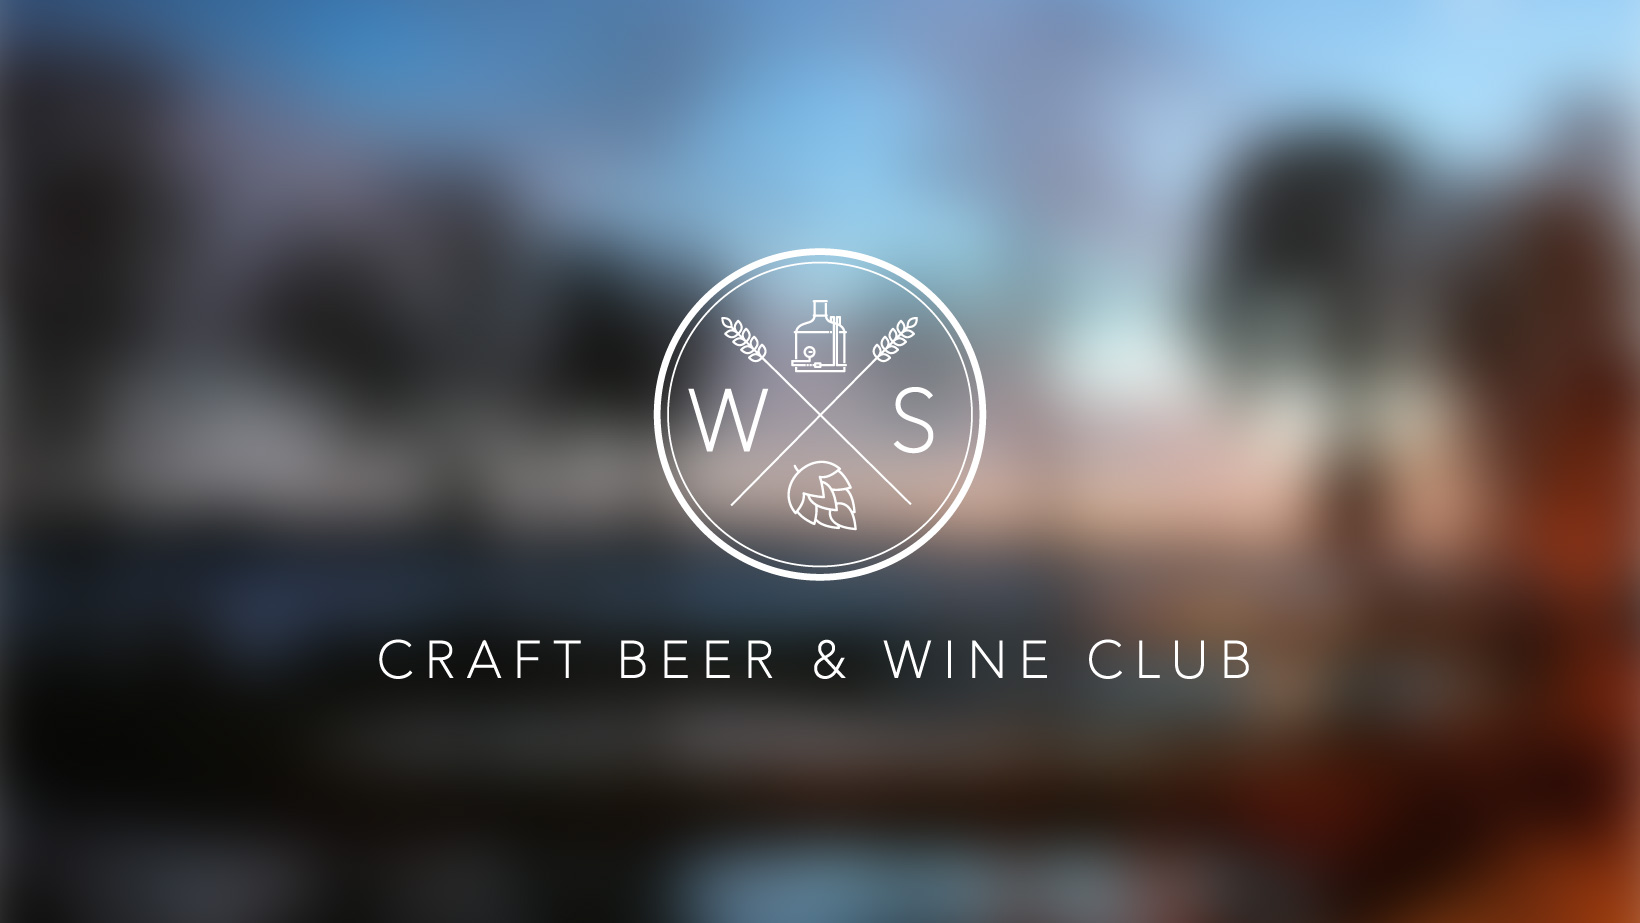 Waterside Craft Beer & Wine Club